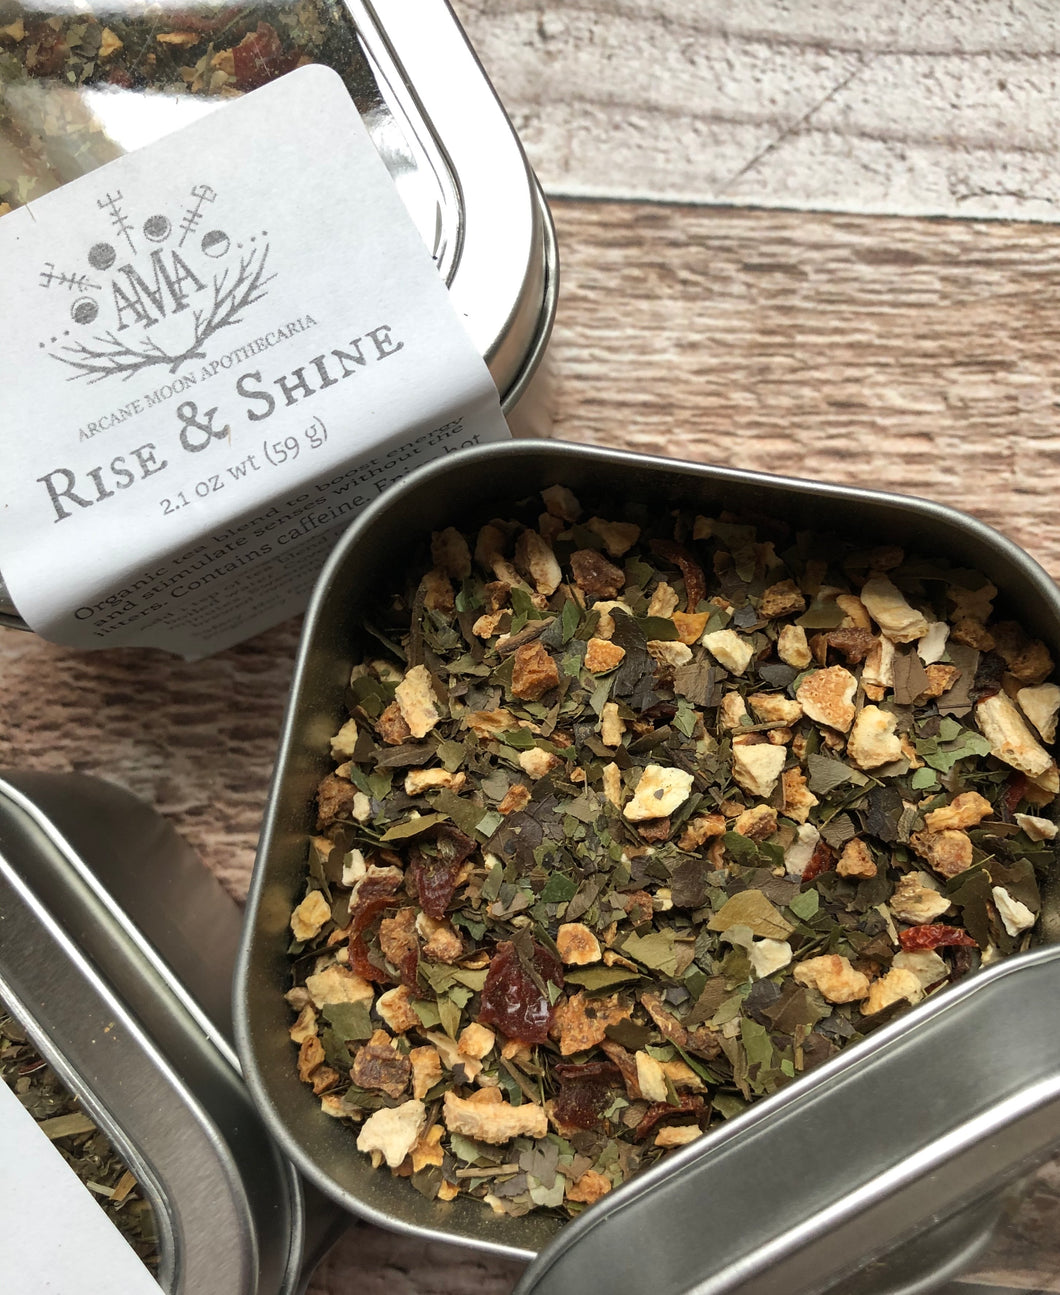 Rise & Shine Loose Leaf Tea